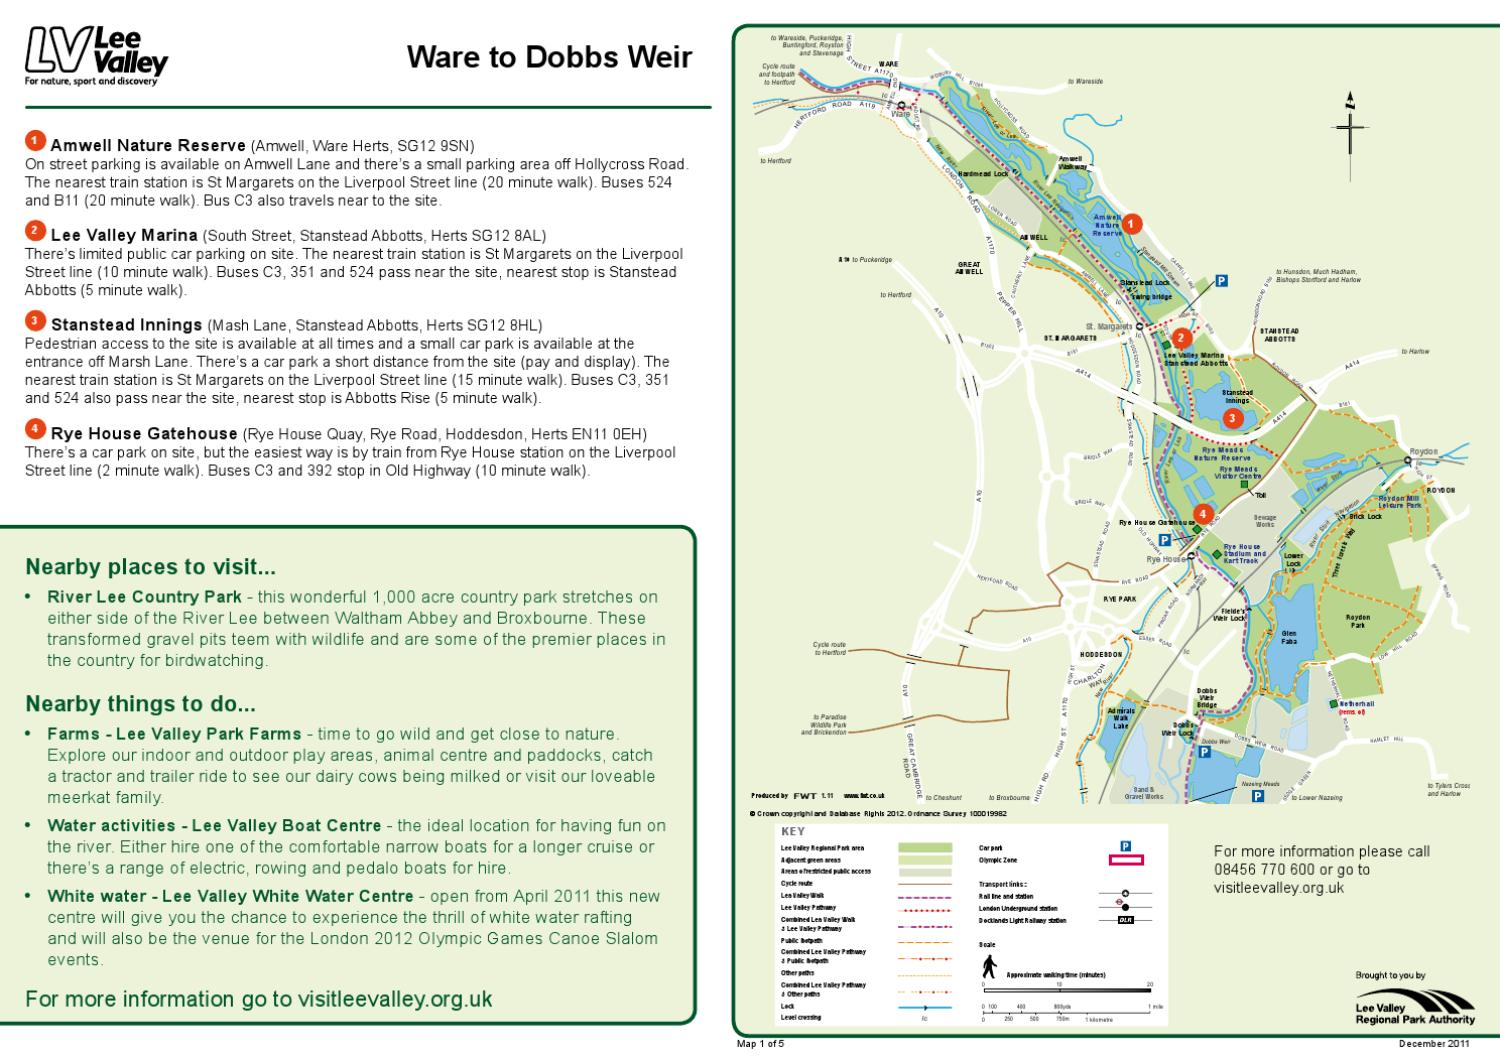 getting here maps ware to dobbs weir by lee valley